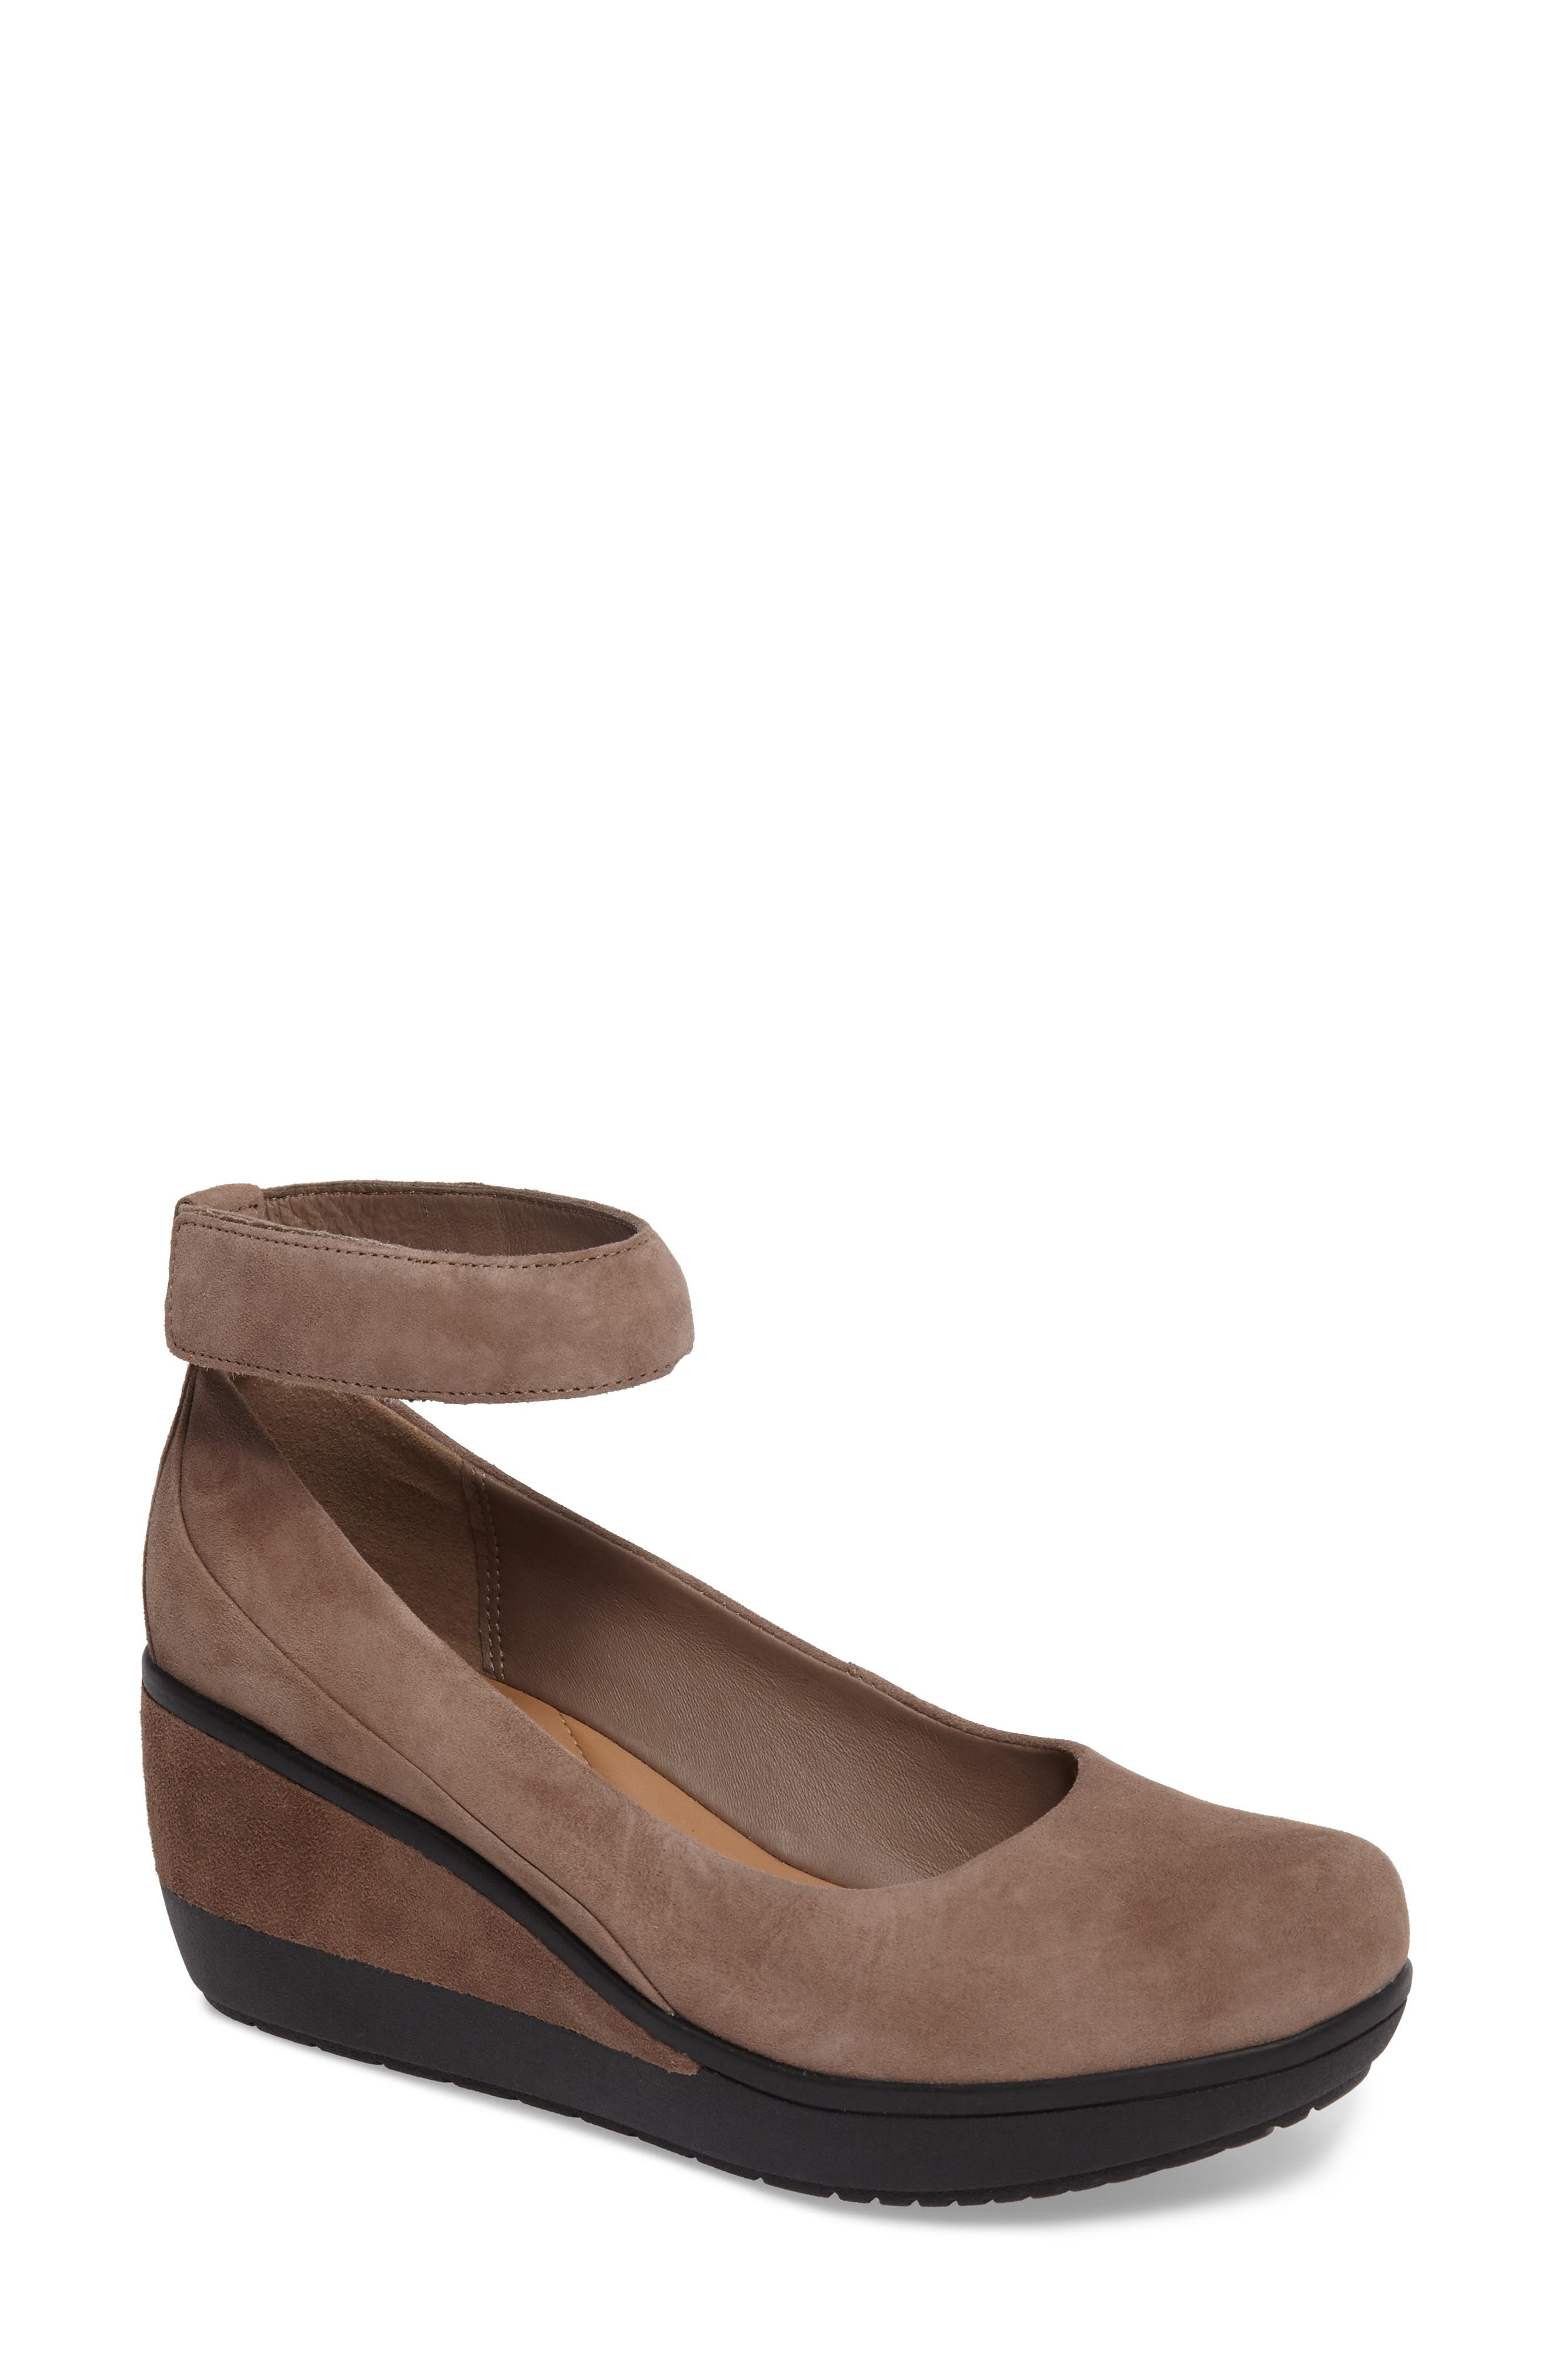 Wynnmere Fox Ankle Strap Pump,                             Main thumbnail 1, color,                             PEBBLE SUEDE